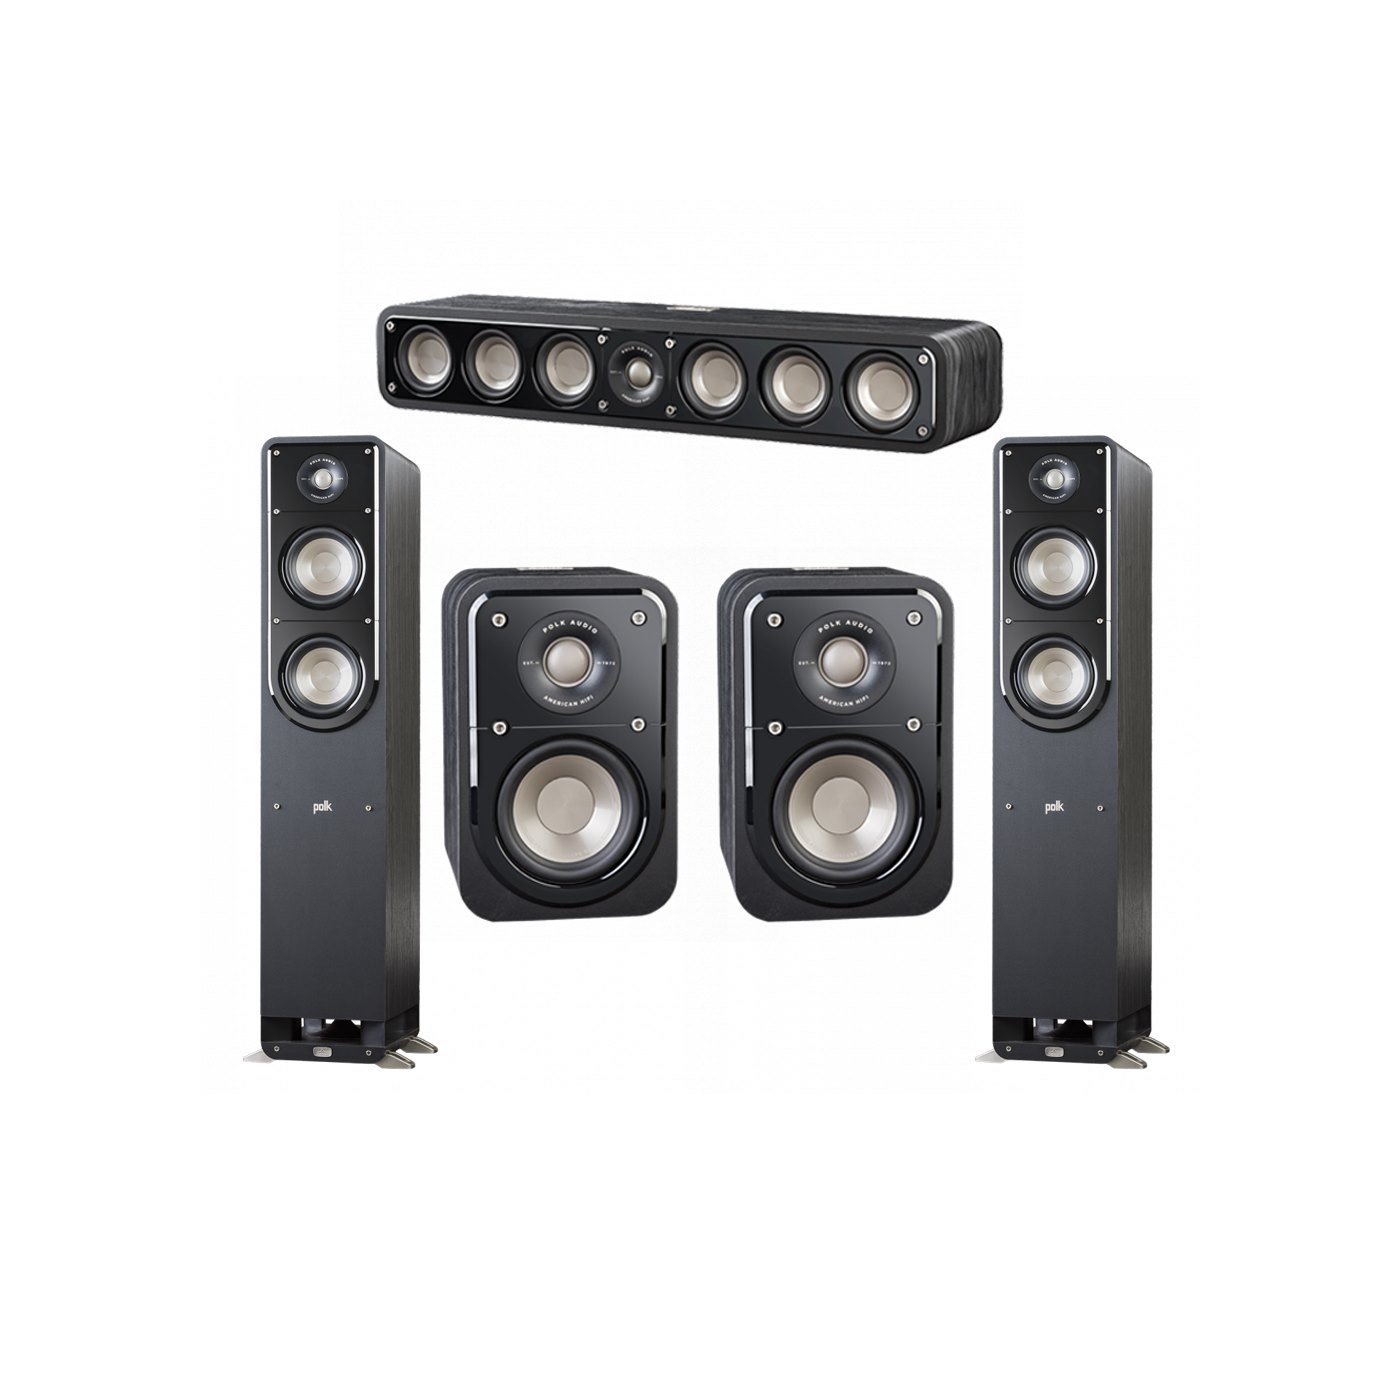 Polk Audio Signature 5.0 System with 2 S50 Tower Speaker, 1 Polk S35 Center Speaker, 2 Polk S10 Surround Speaker